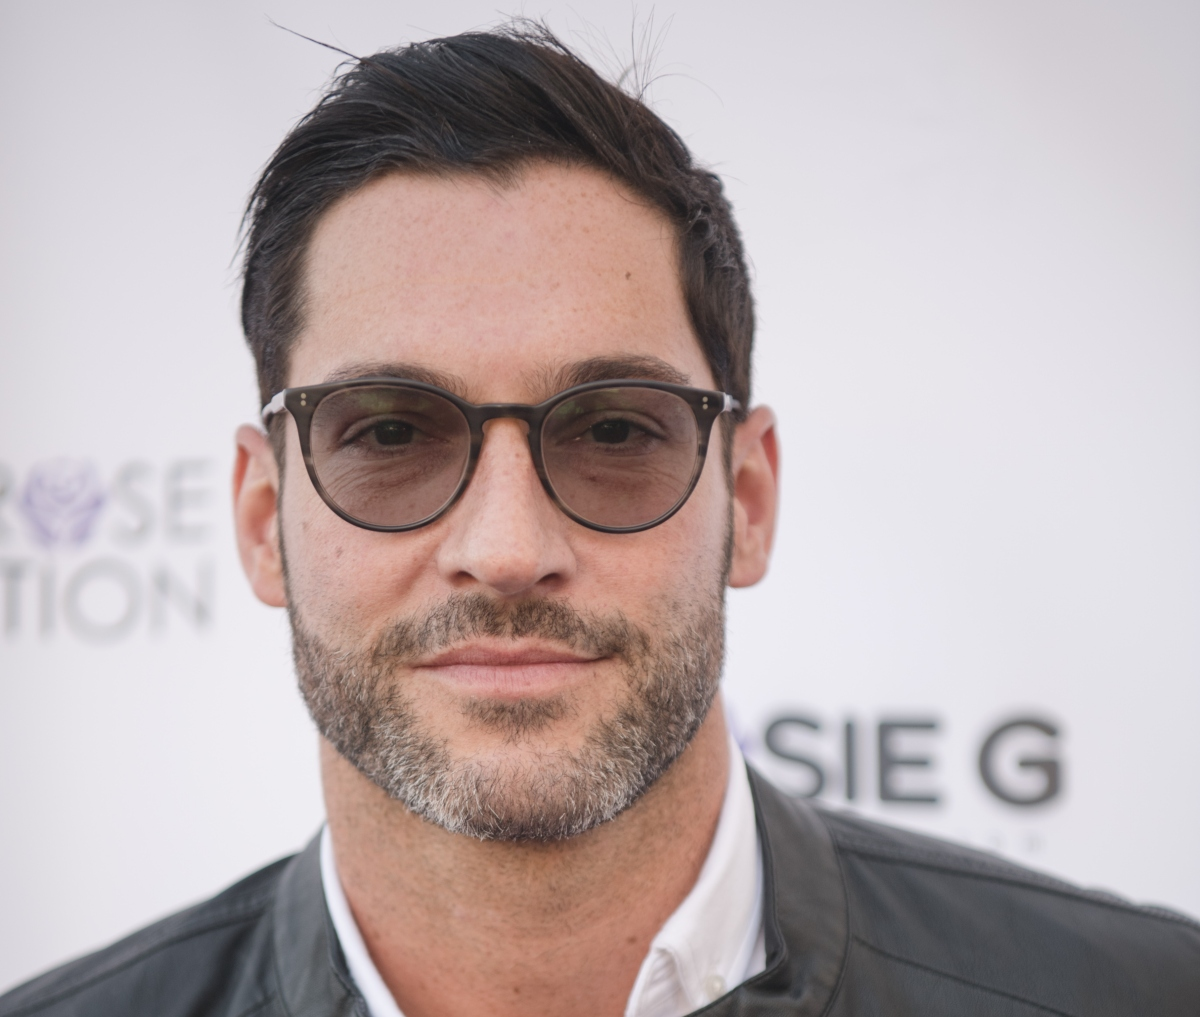 'Lucifer' star Tom Ellis at the 16th Annual Grace Rose Foundation fundraiser at SLS Hotel on September 7, 2019 in Beverly Hills, California